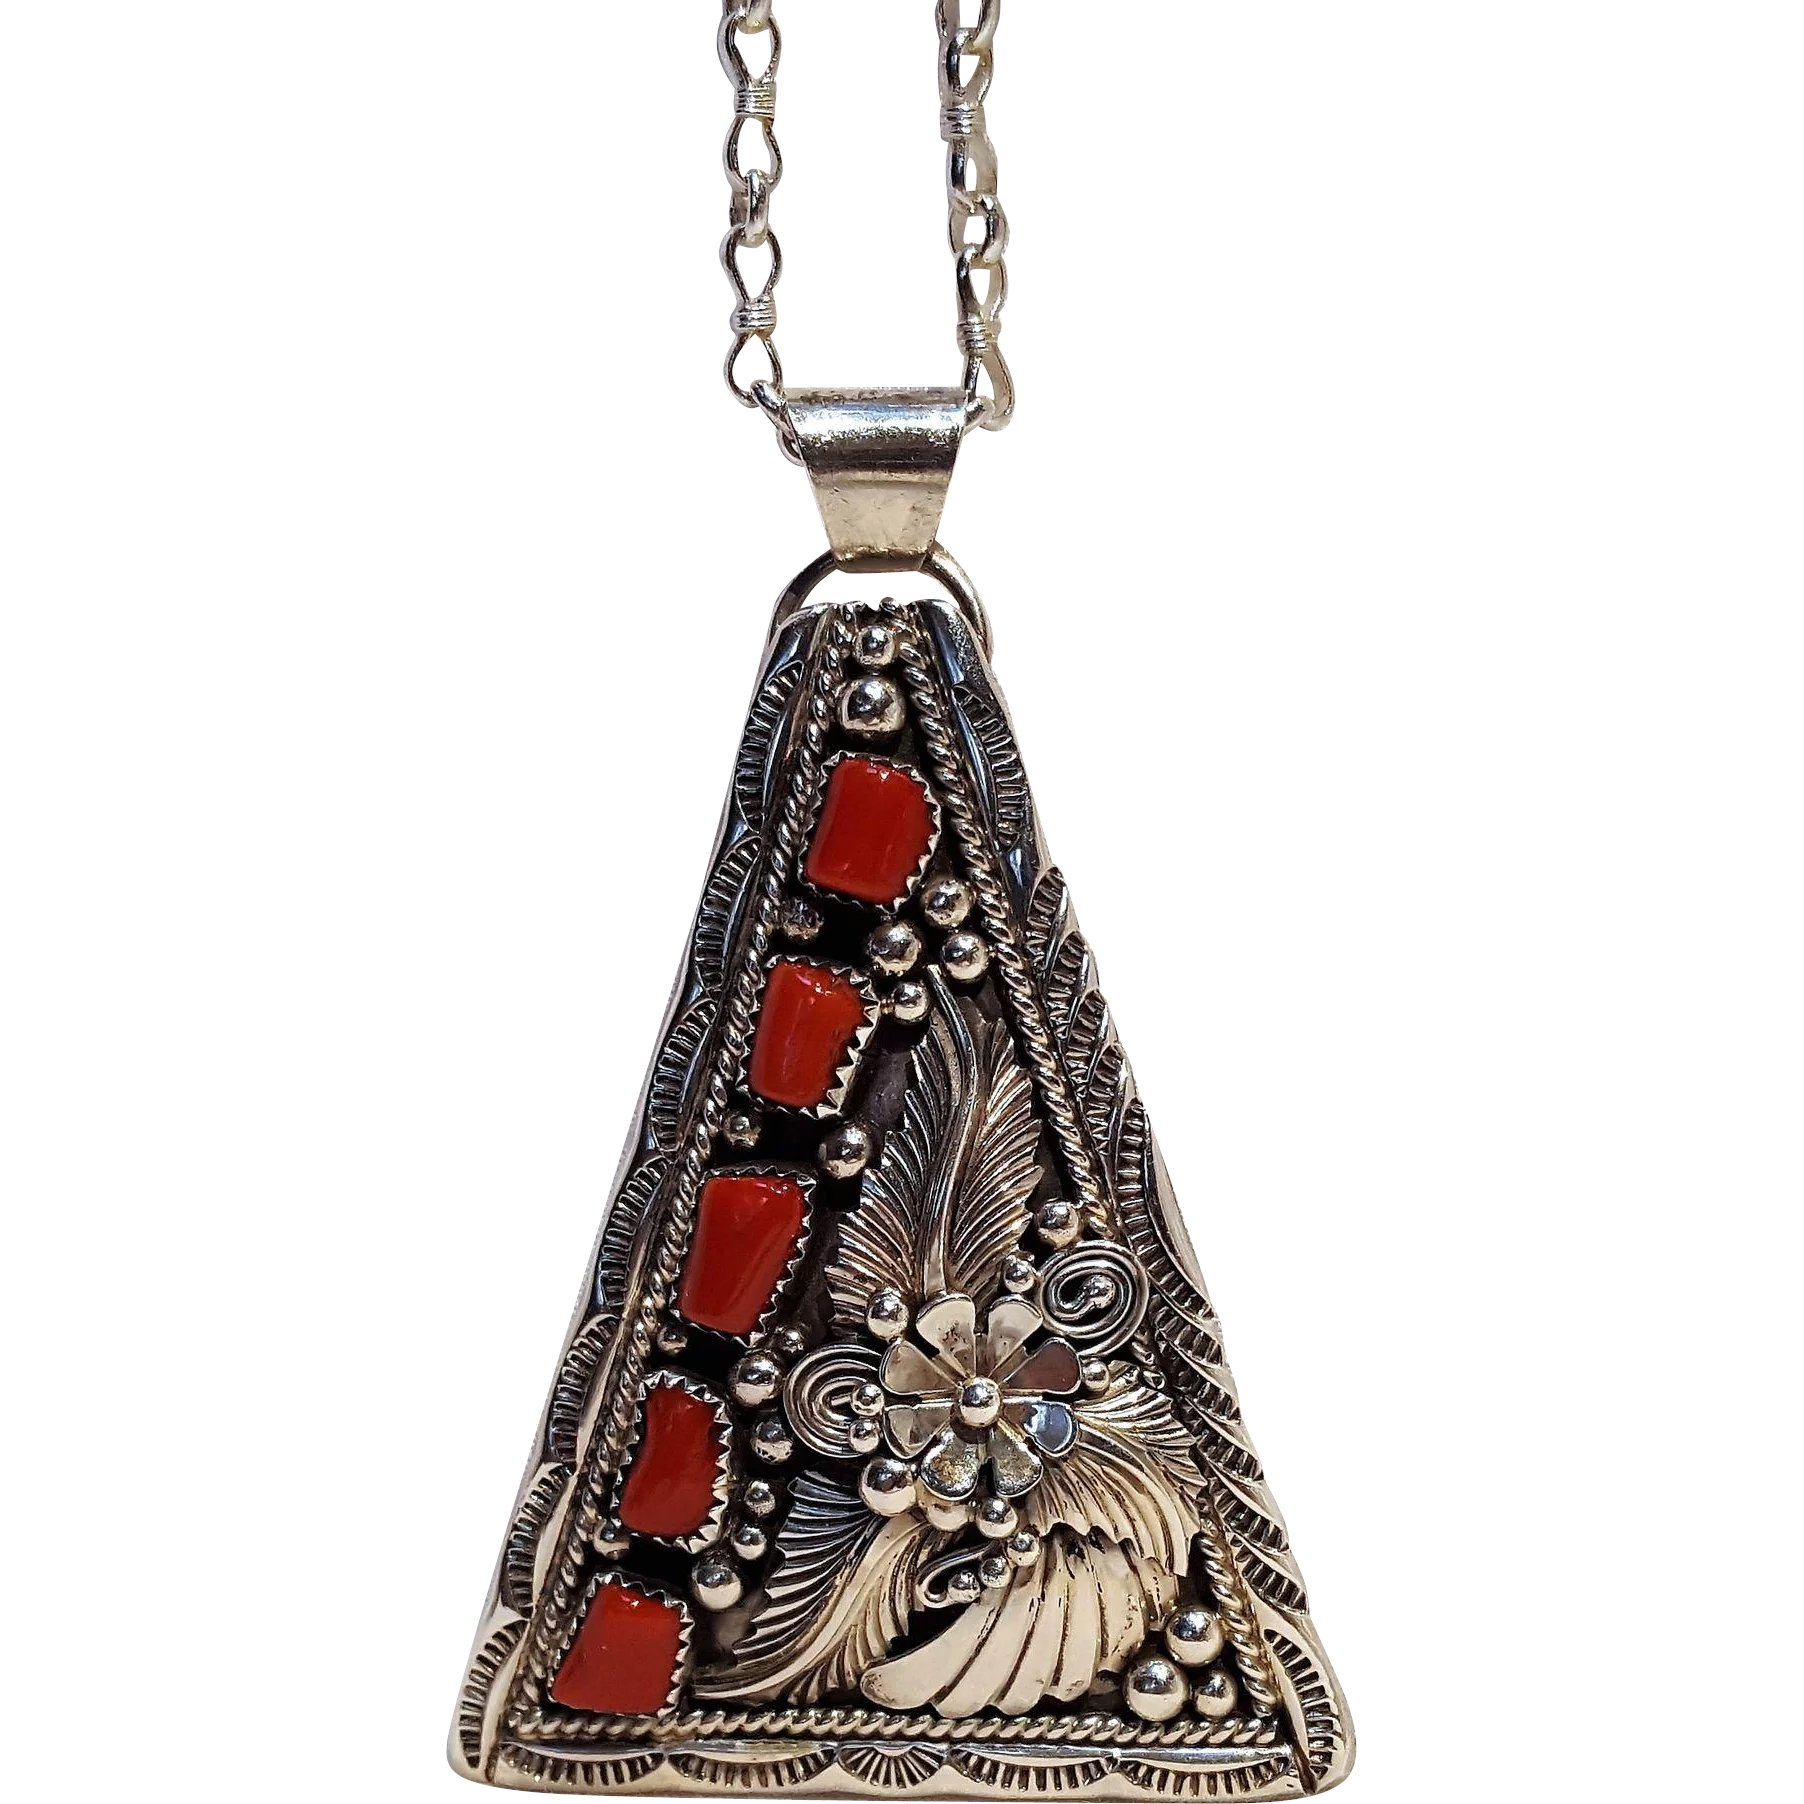 village a navajo original artist shop adobe by jewelry stary native american inlayed begay pend night pendant over fred sr hand reversible